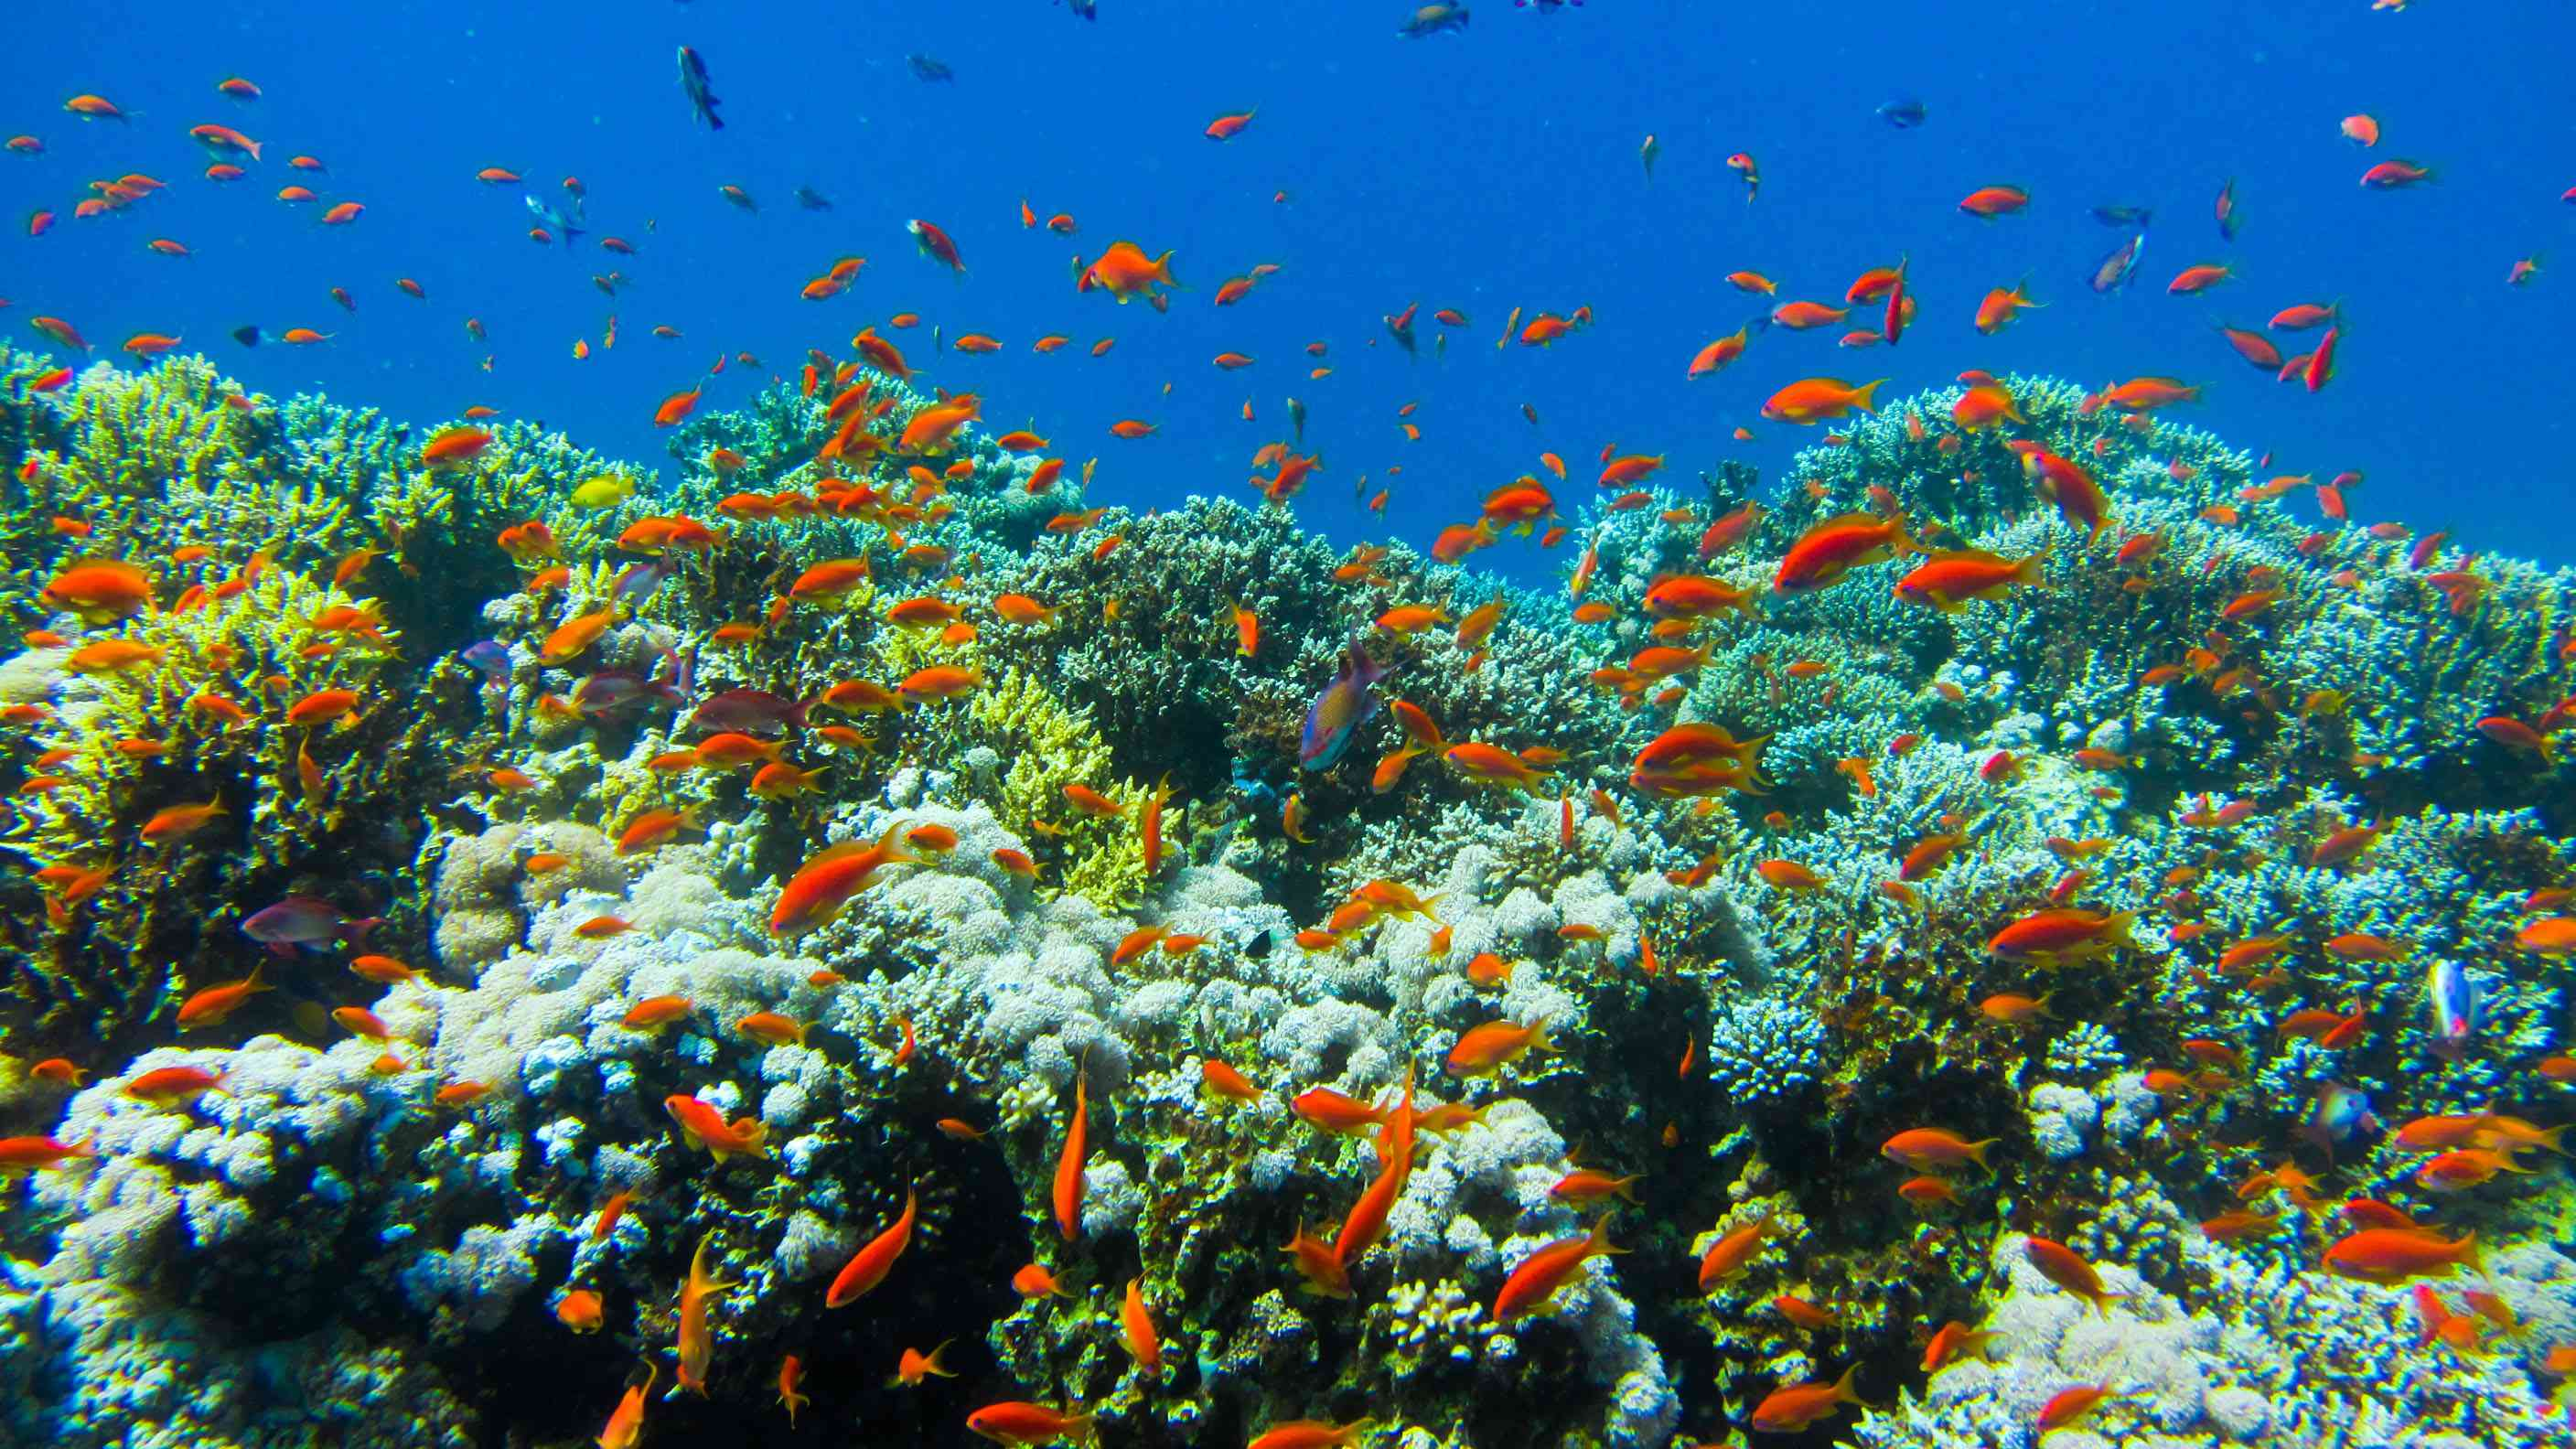 Colorful fish school on reef